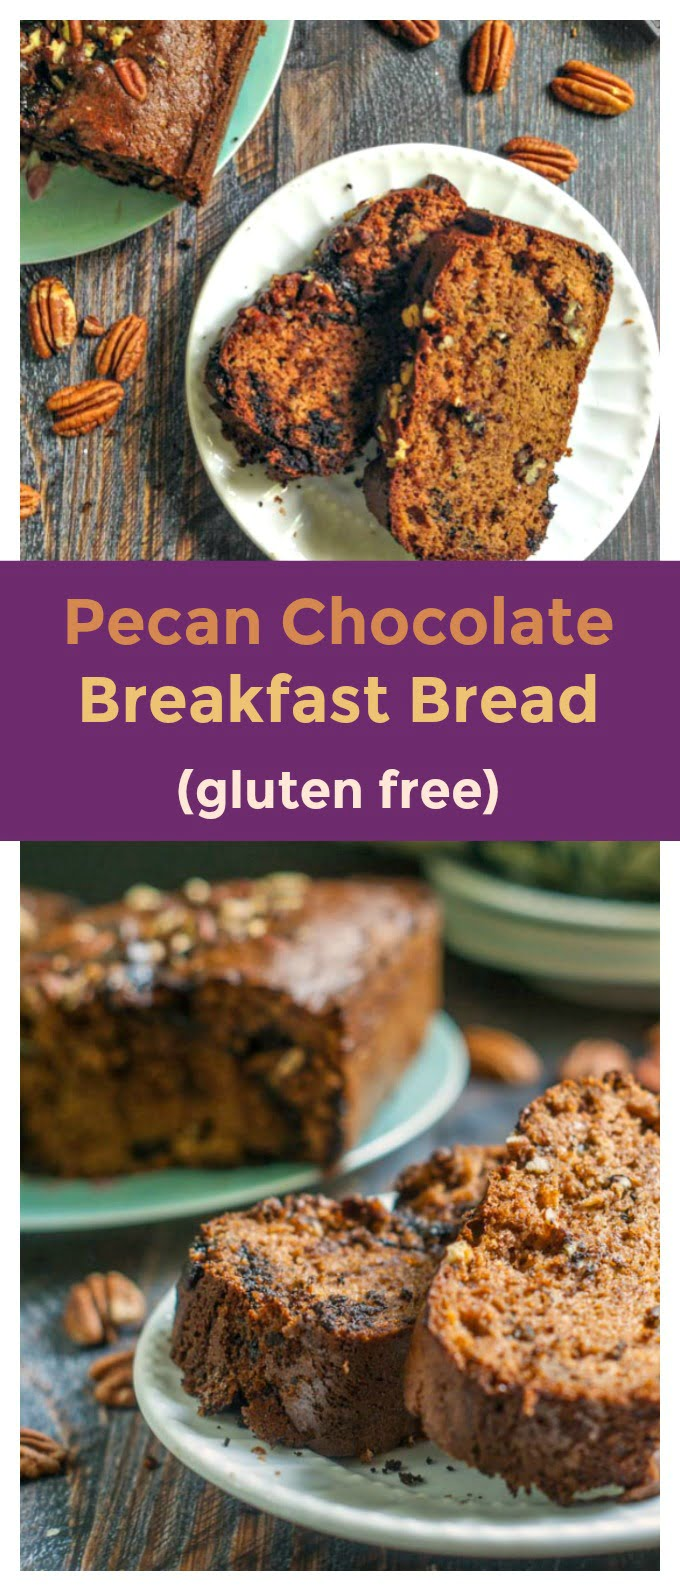 This pecan chocolate breakfast bread is a delicious gluten free treat that you can have every morning. Easy to make and freezable too!